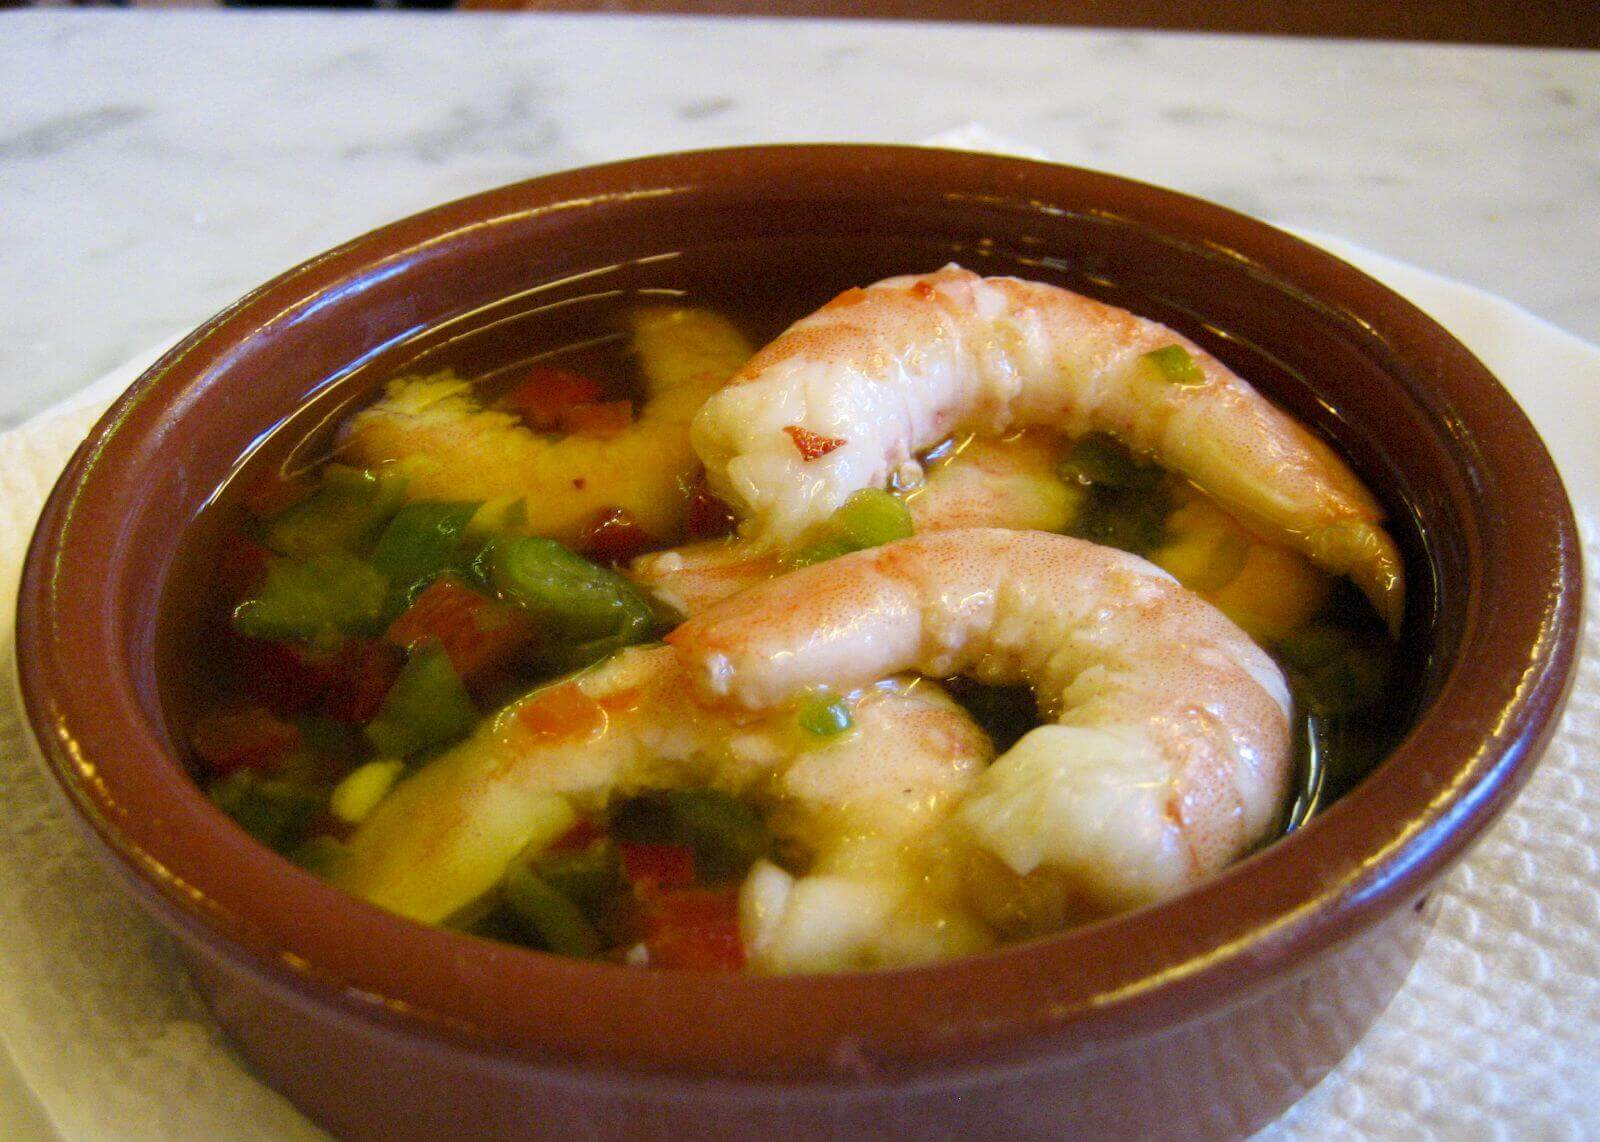 Tapa with shrimp, olive oil and pepper from Barcelona. Taken by Terence via Flickr .